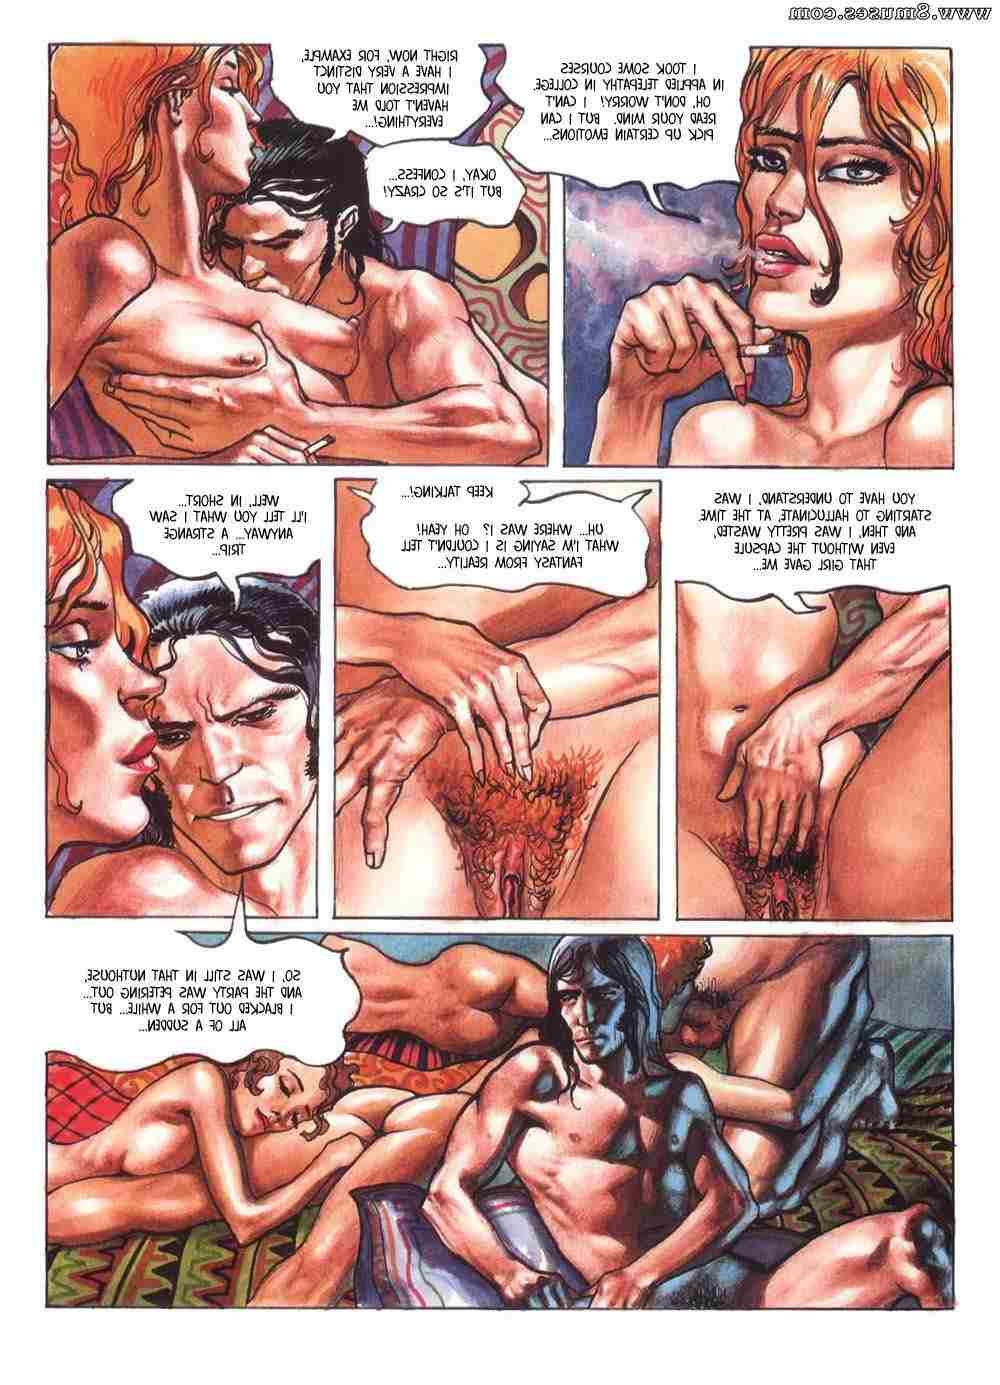 Various-Authors/Starzo/Mike-Mercury Mike_Mercury__8muses_-_Sex_and_Porn_Comics_17.jpg